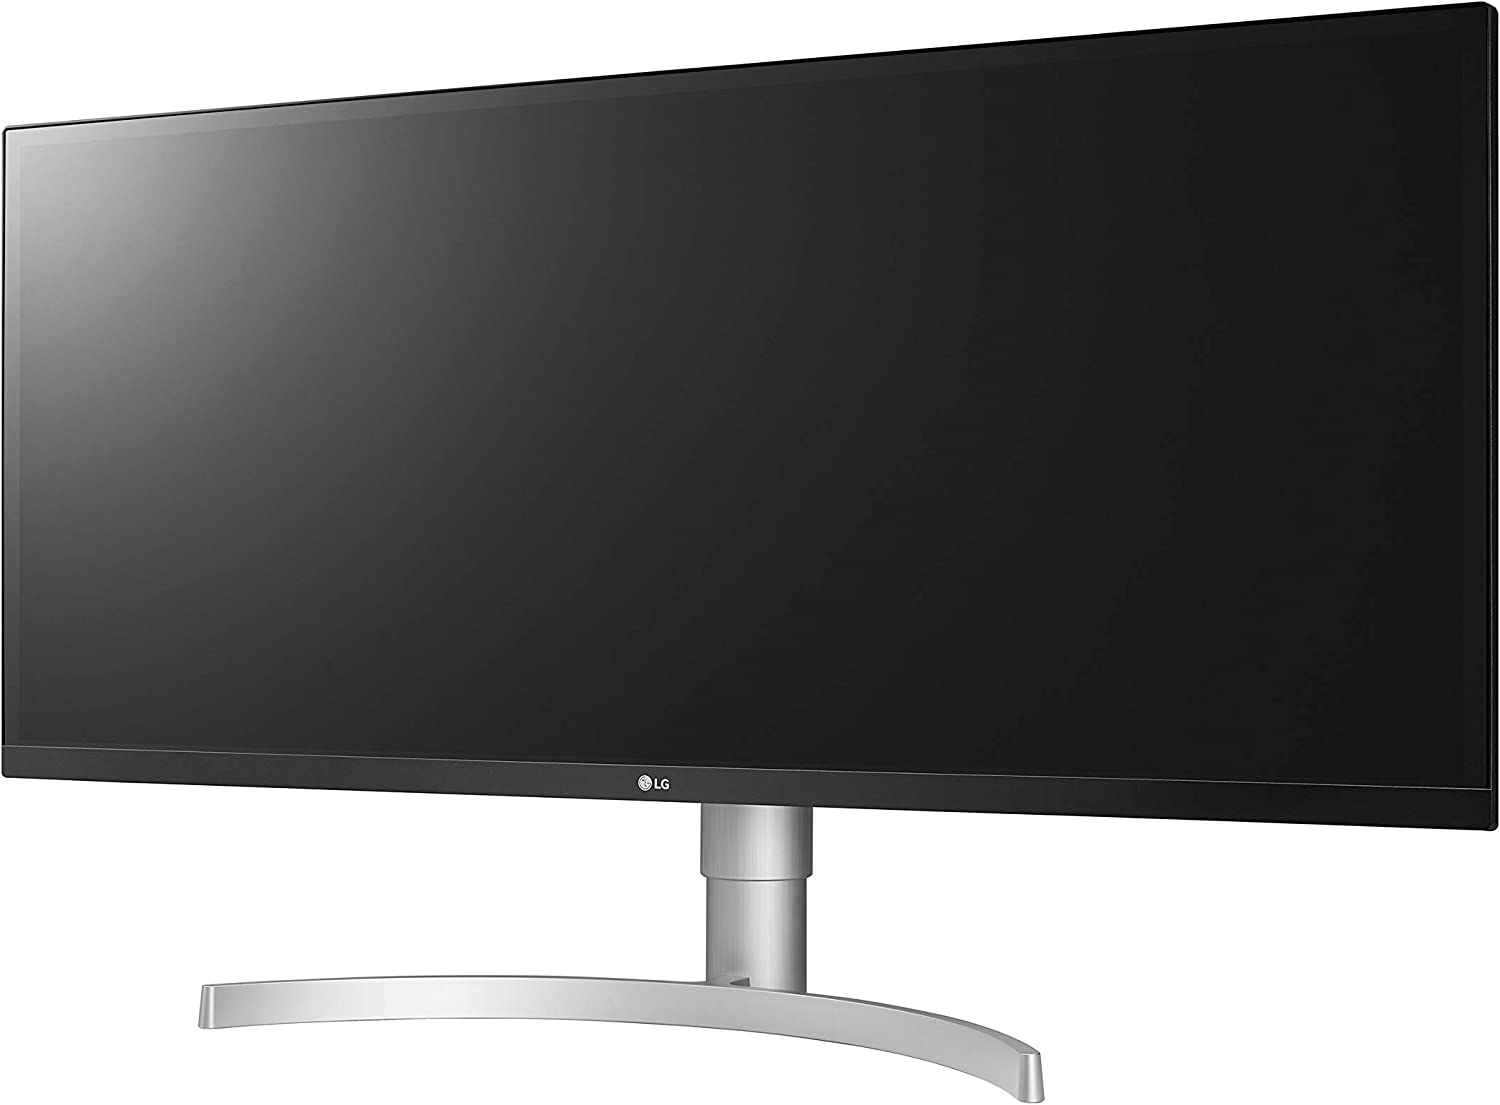 LG 34WL850-W 34 inches Review